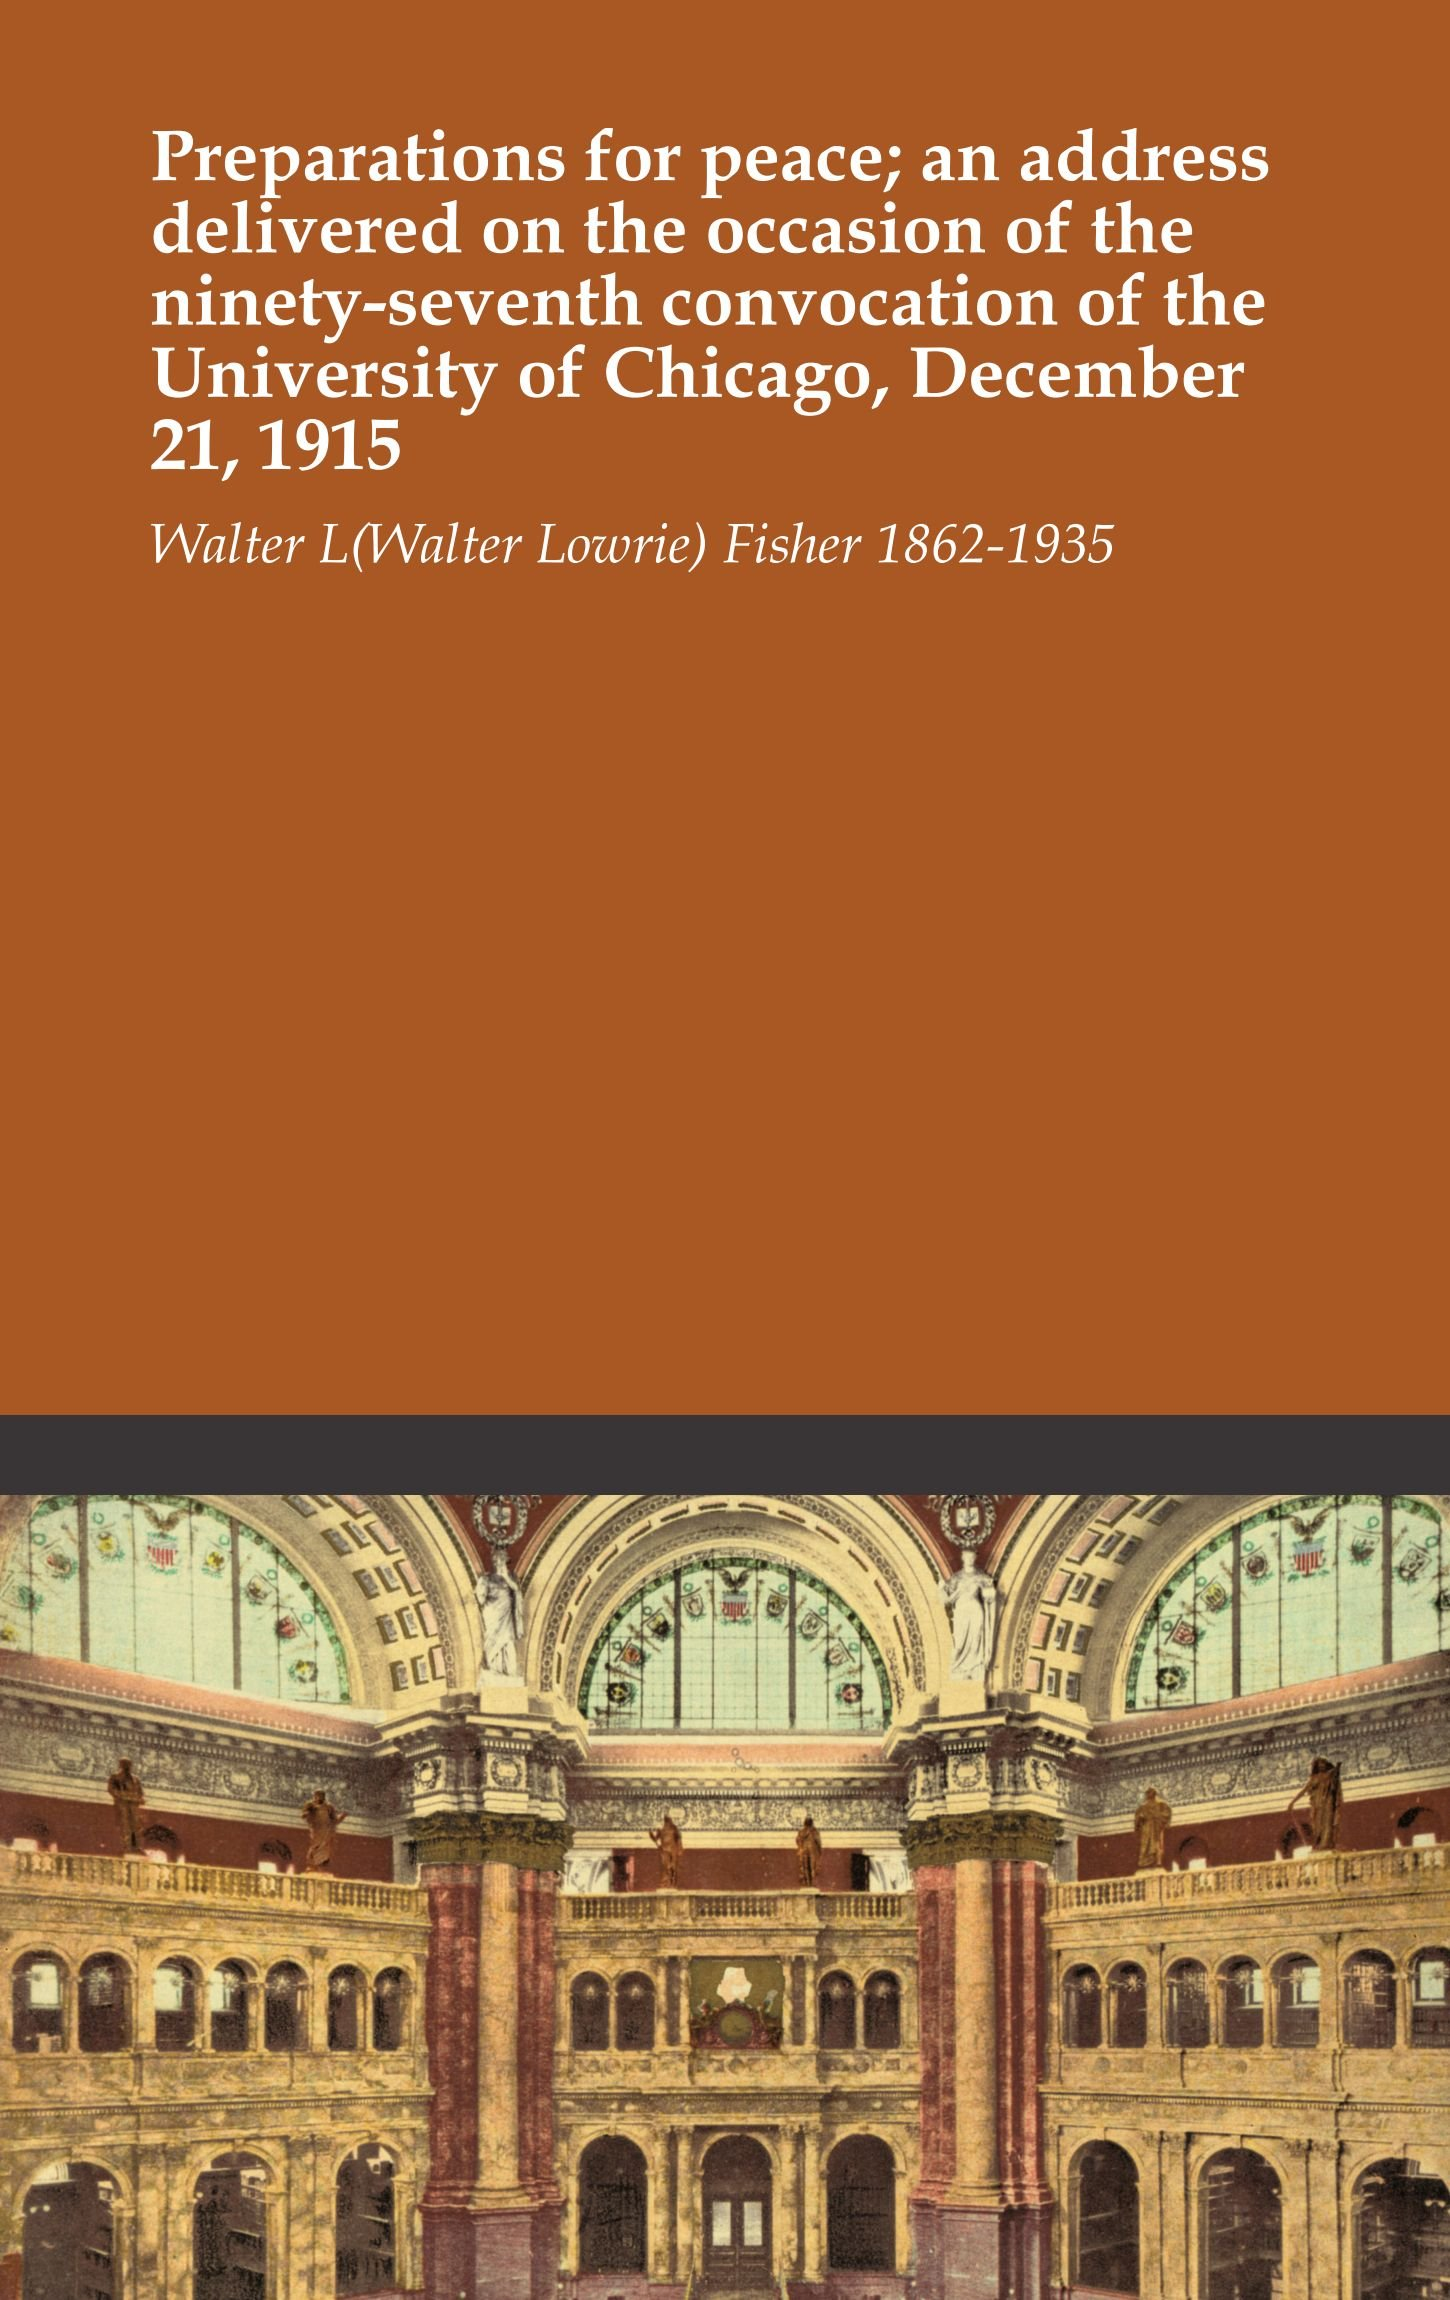 Download Preparations for peace; an address delivered on the occasion of the ninety-seventh convocation of the University of Chicago, December 21, 1915 pdf epub